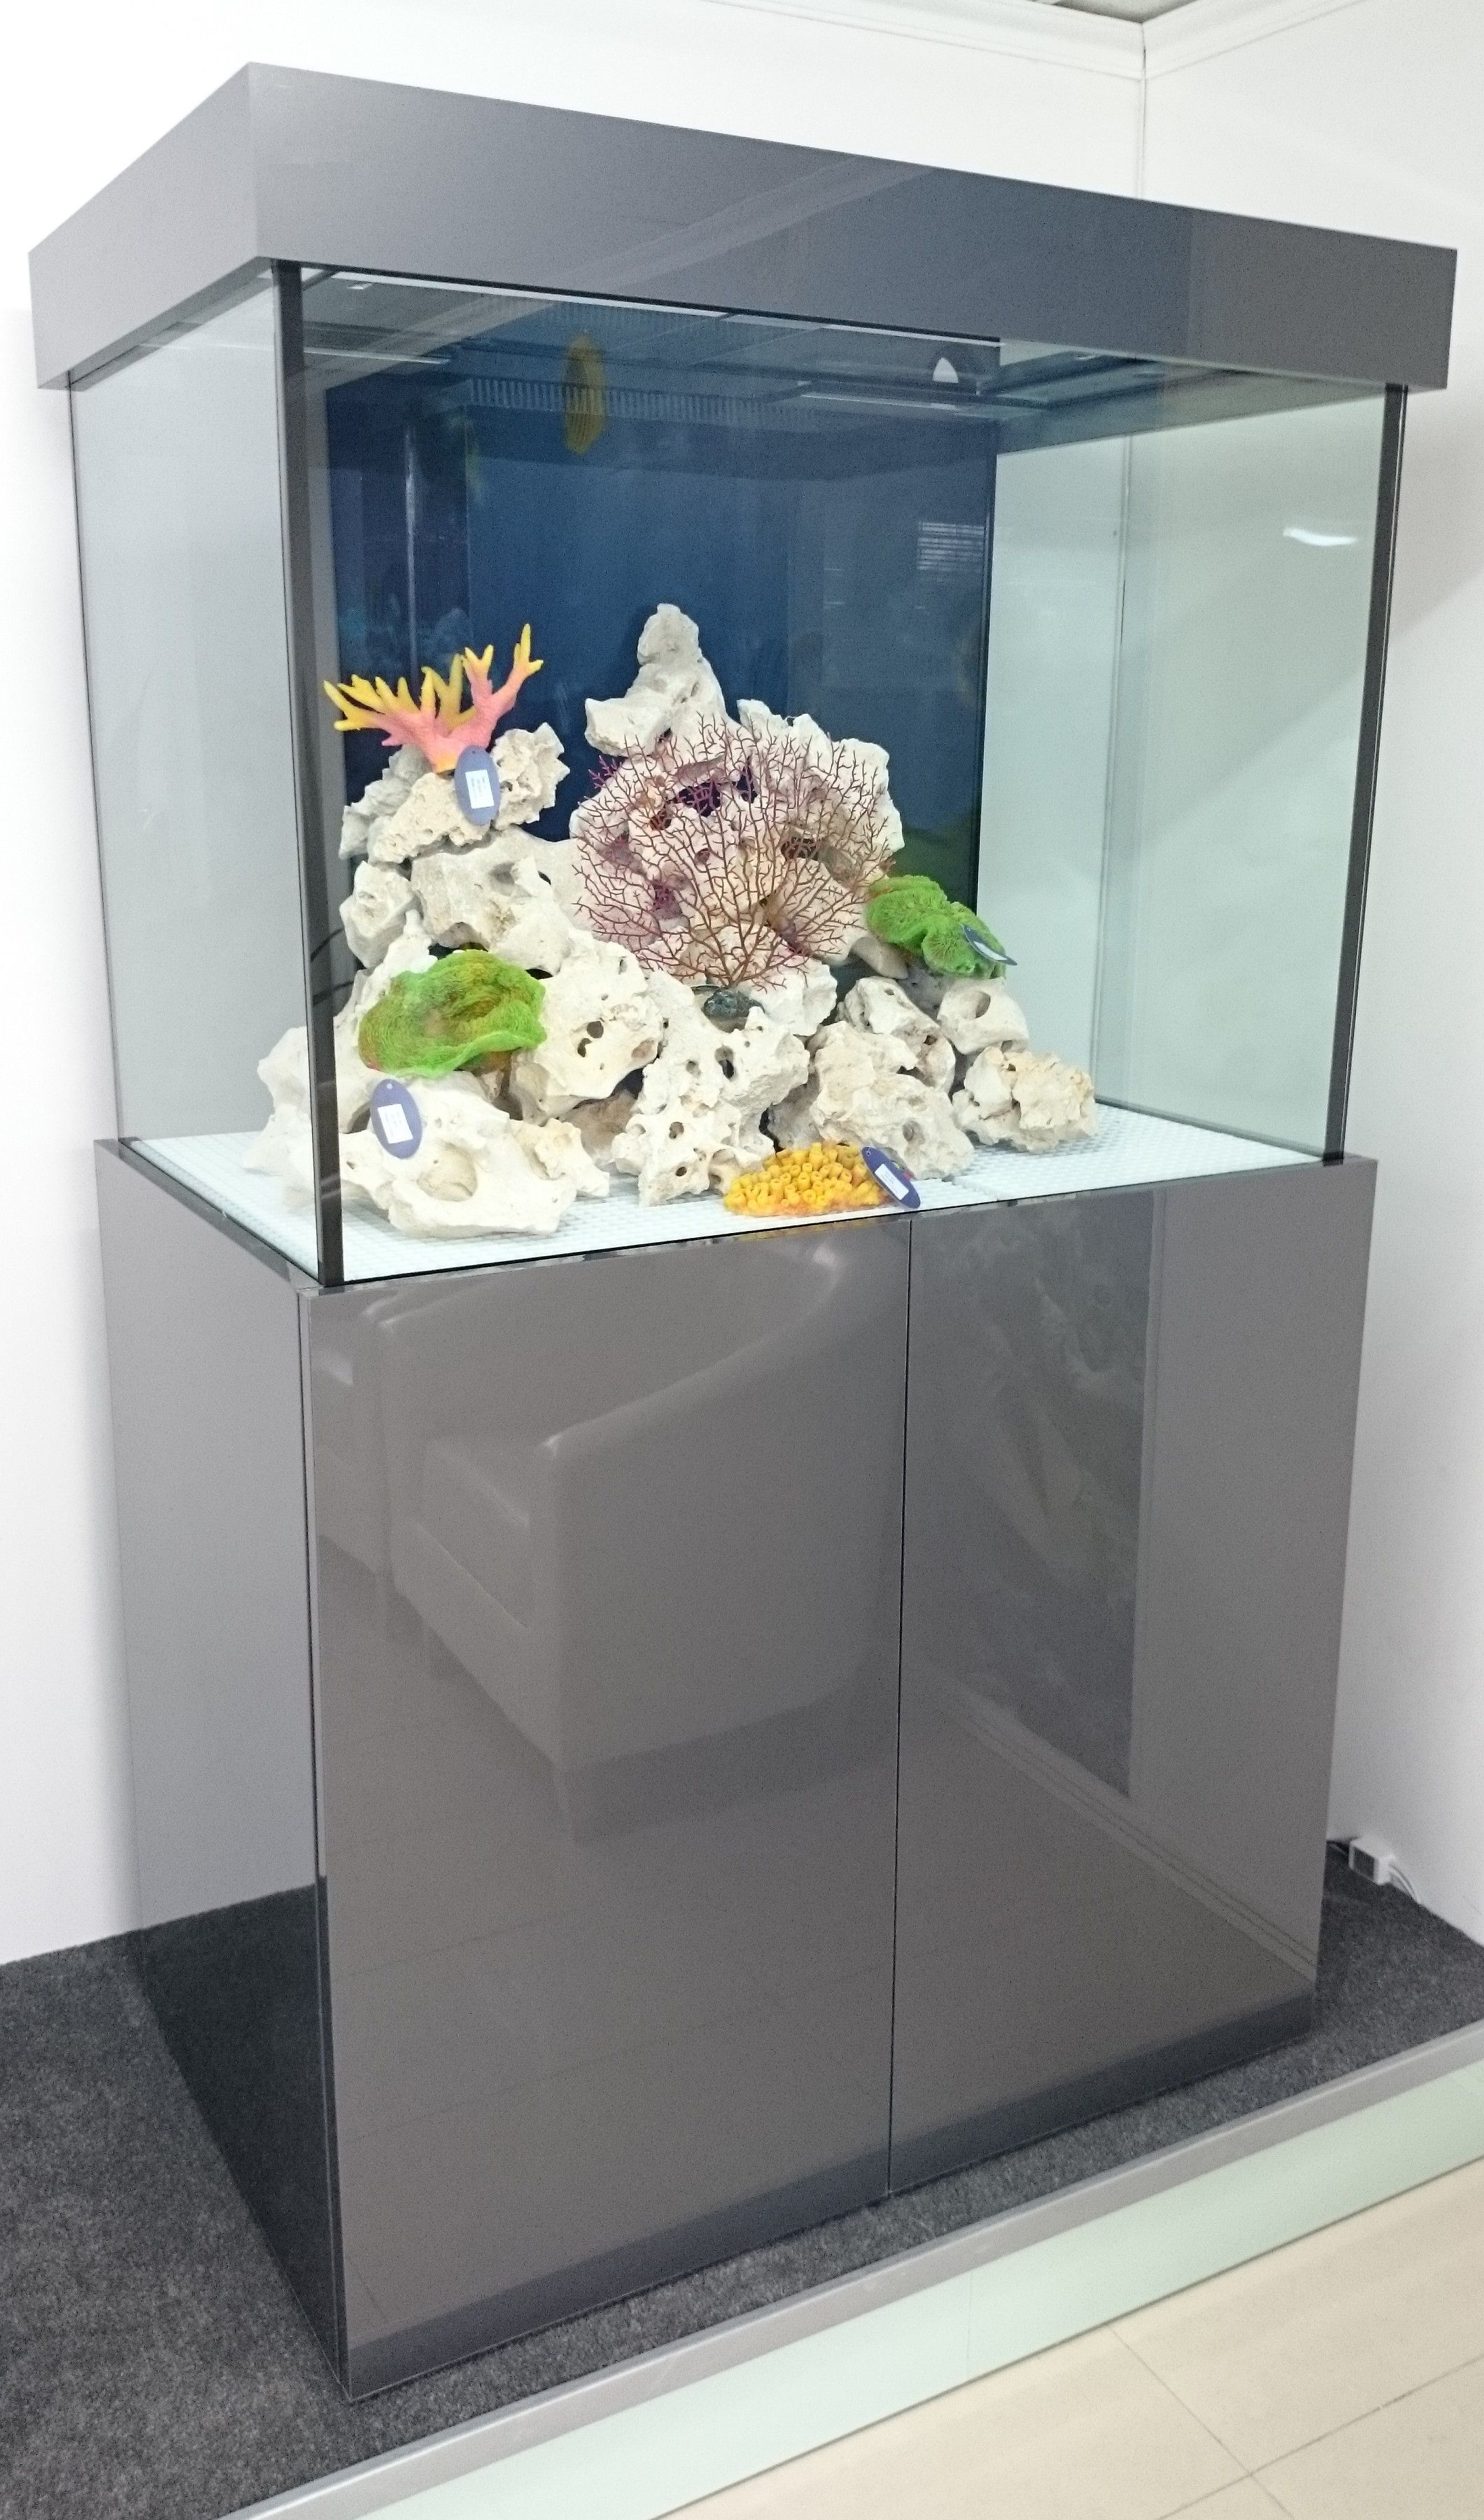 Aquarium Unterschrank 30 X 30 Marine Aquarium 36 Quotx30 Quotx24 Quot Modern Design Cabinet In High